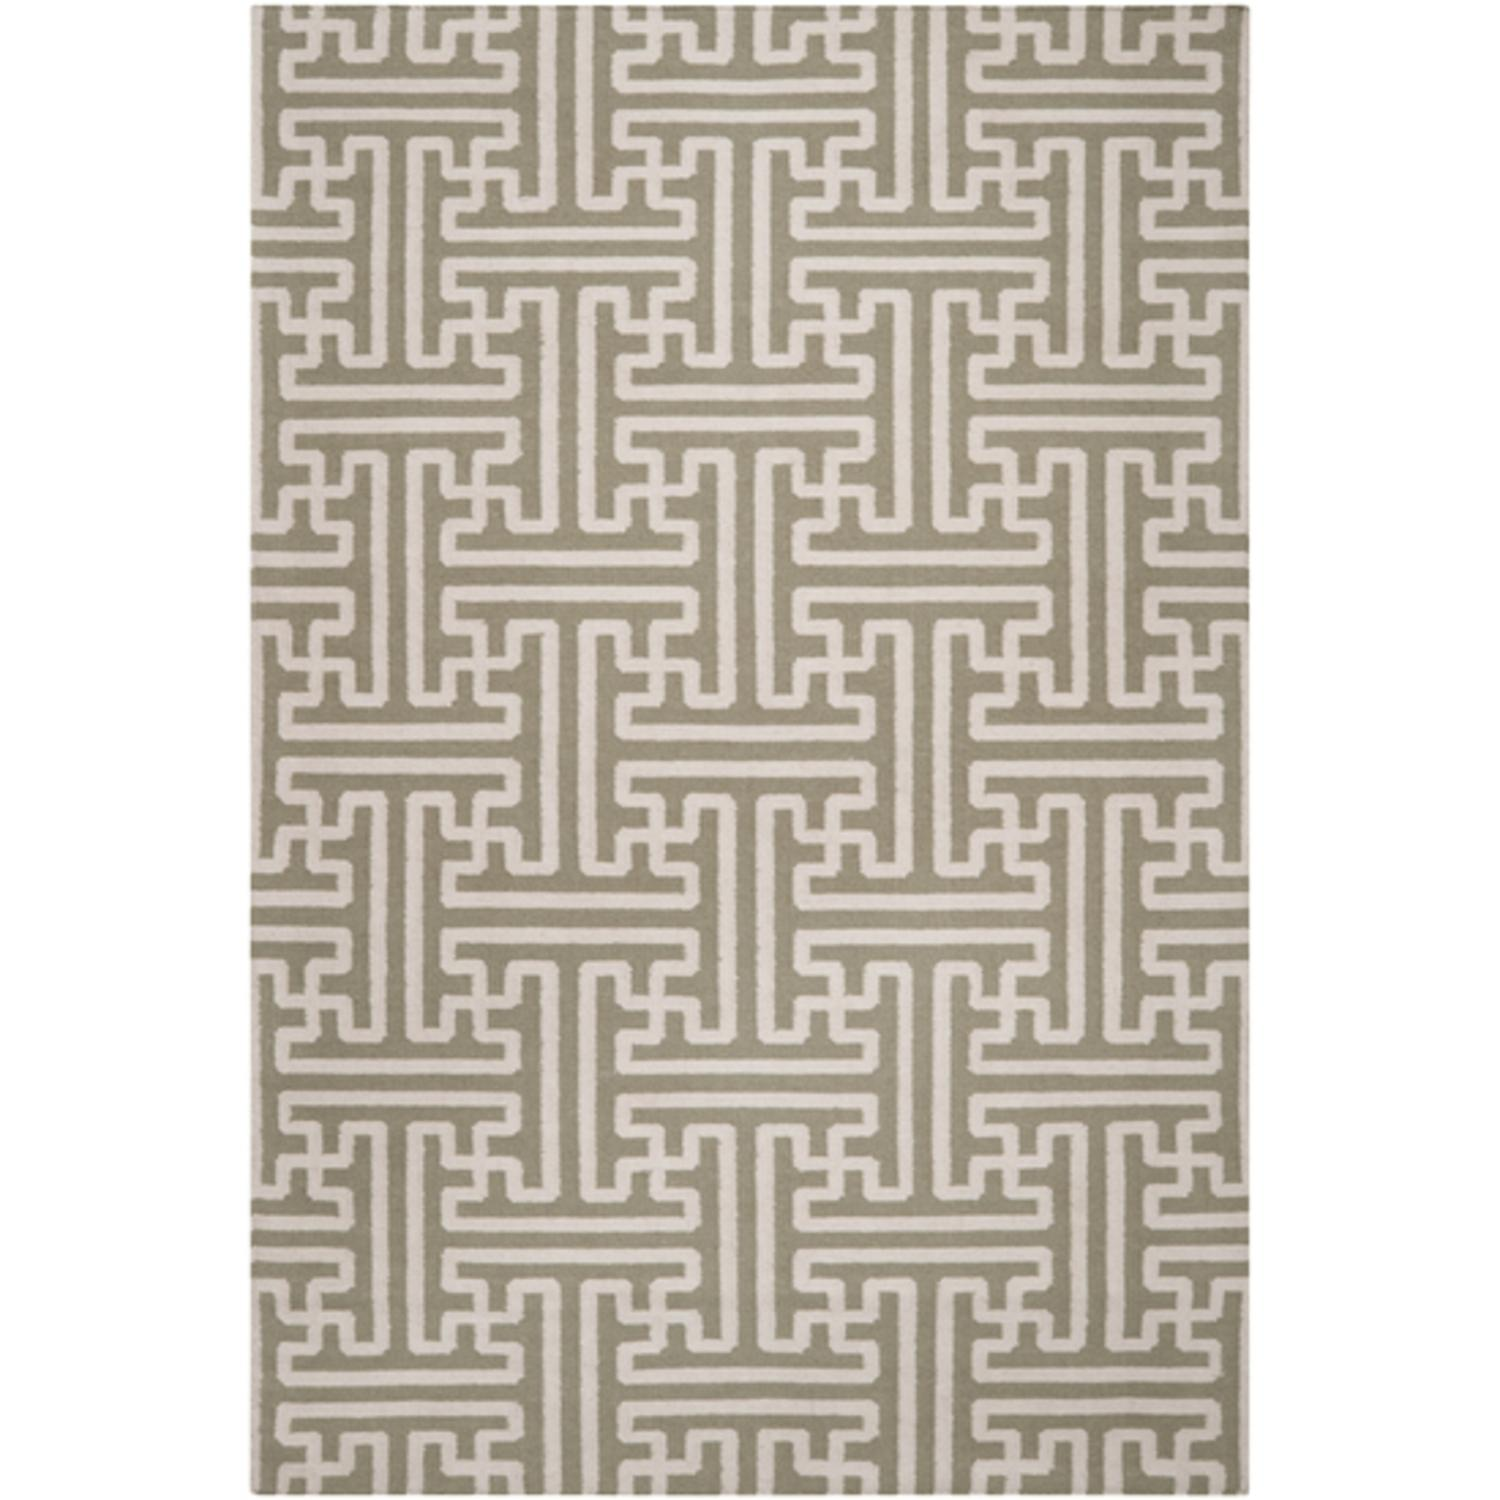 5' x 8' Block Pillars Winter White and Khaki Green Wool Area Throw Rug